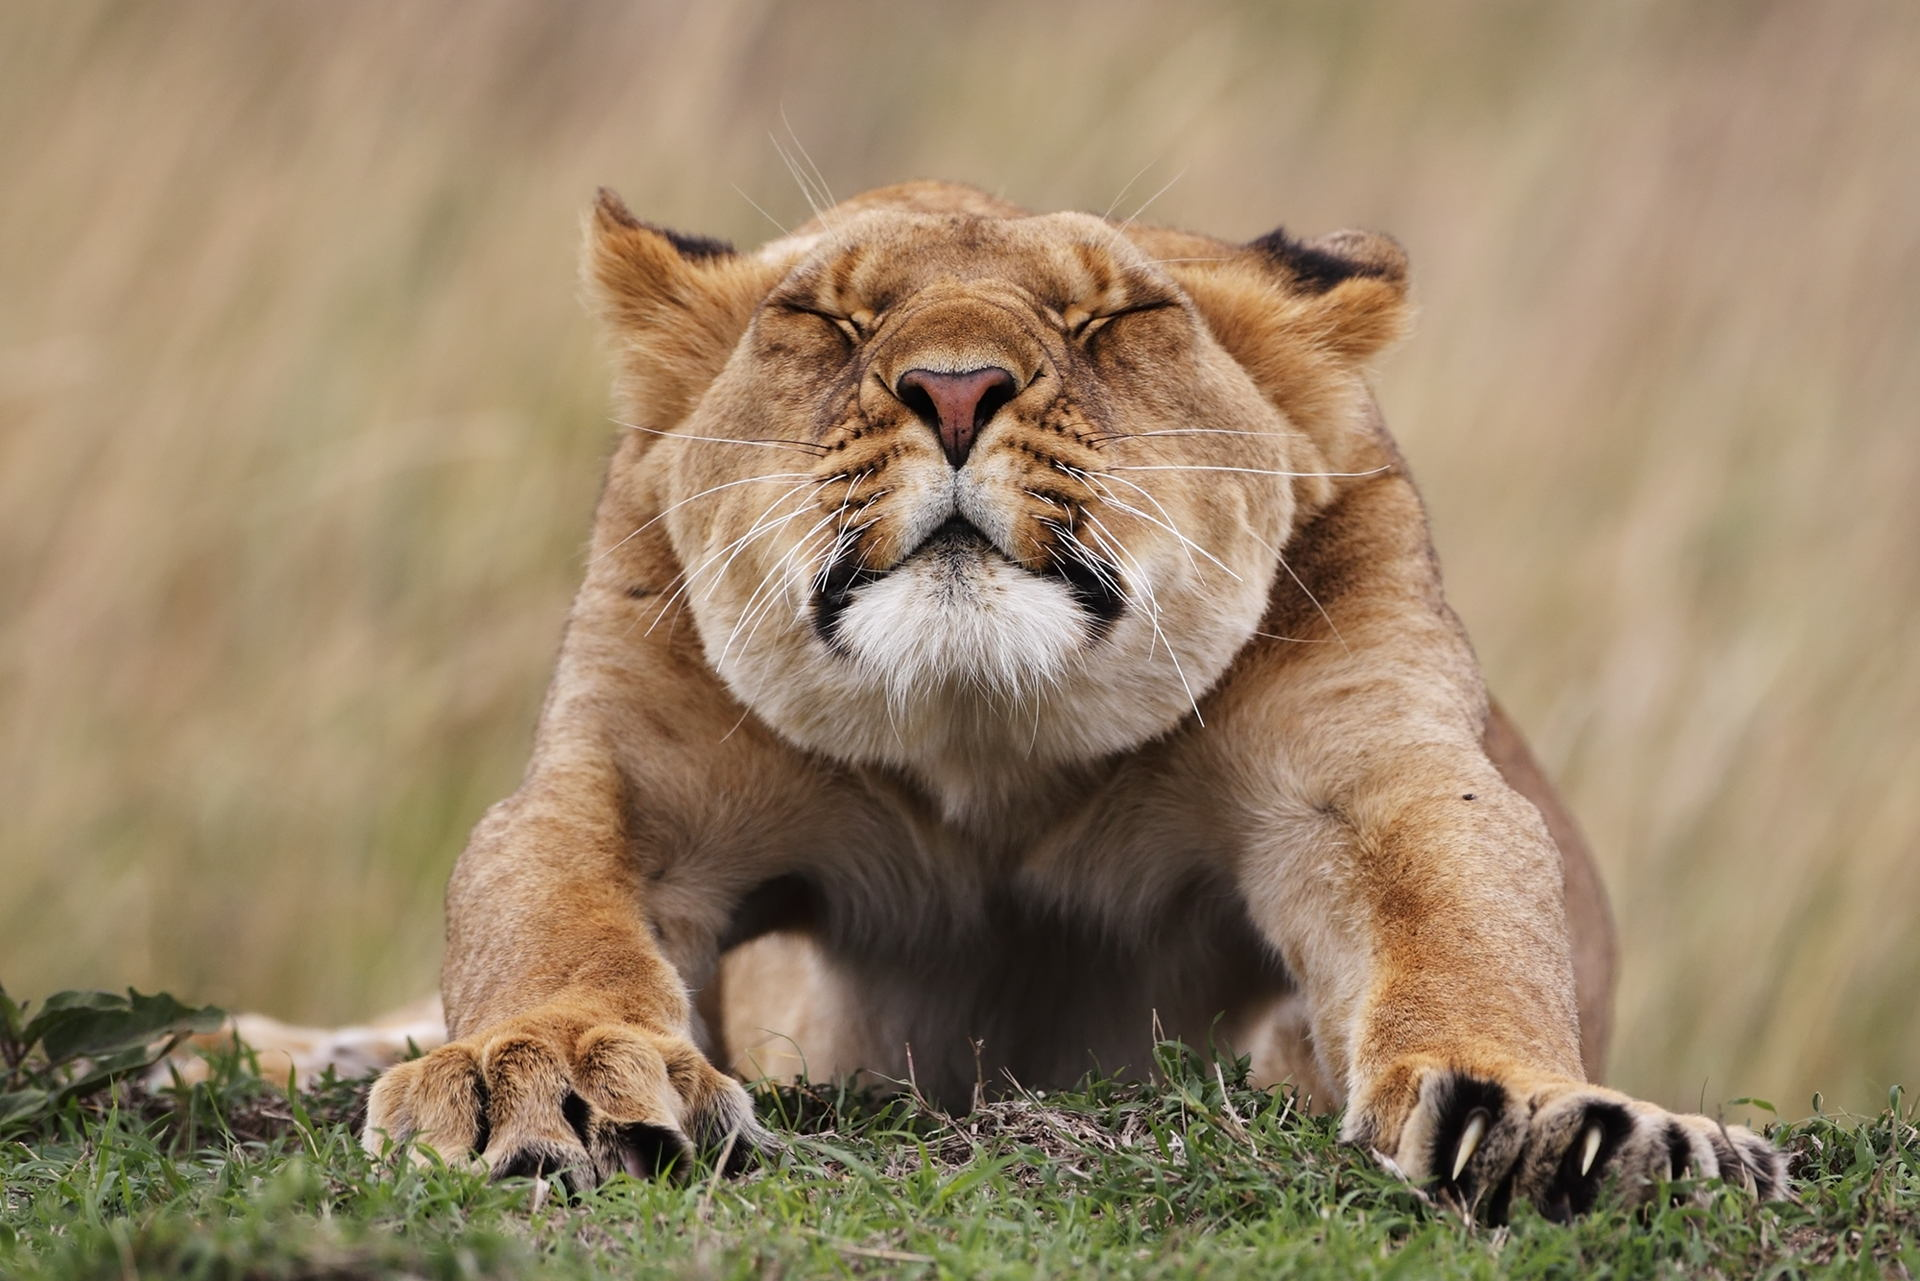 The Wild Story Behind this Stretching Lioness Photo—Revealed